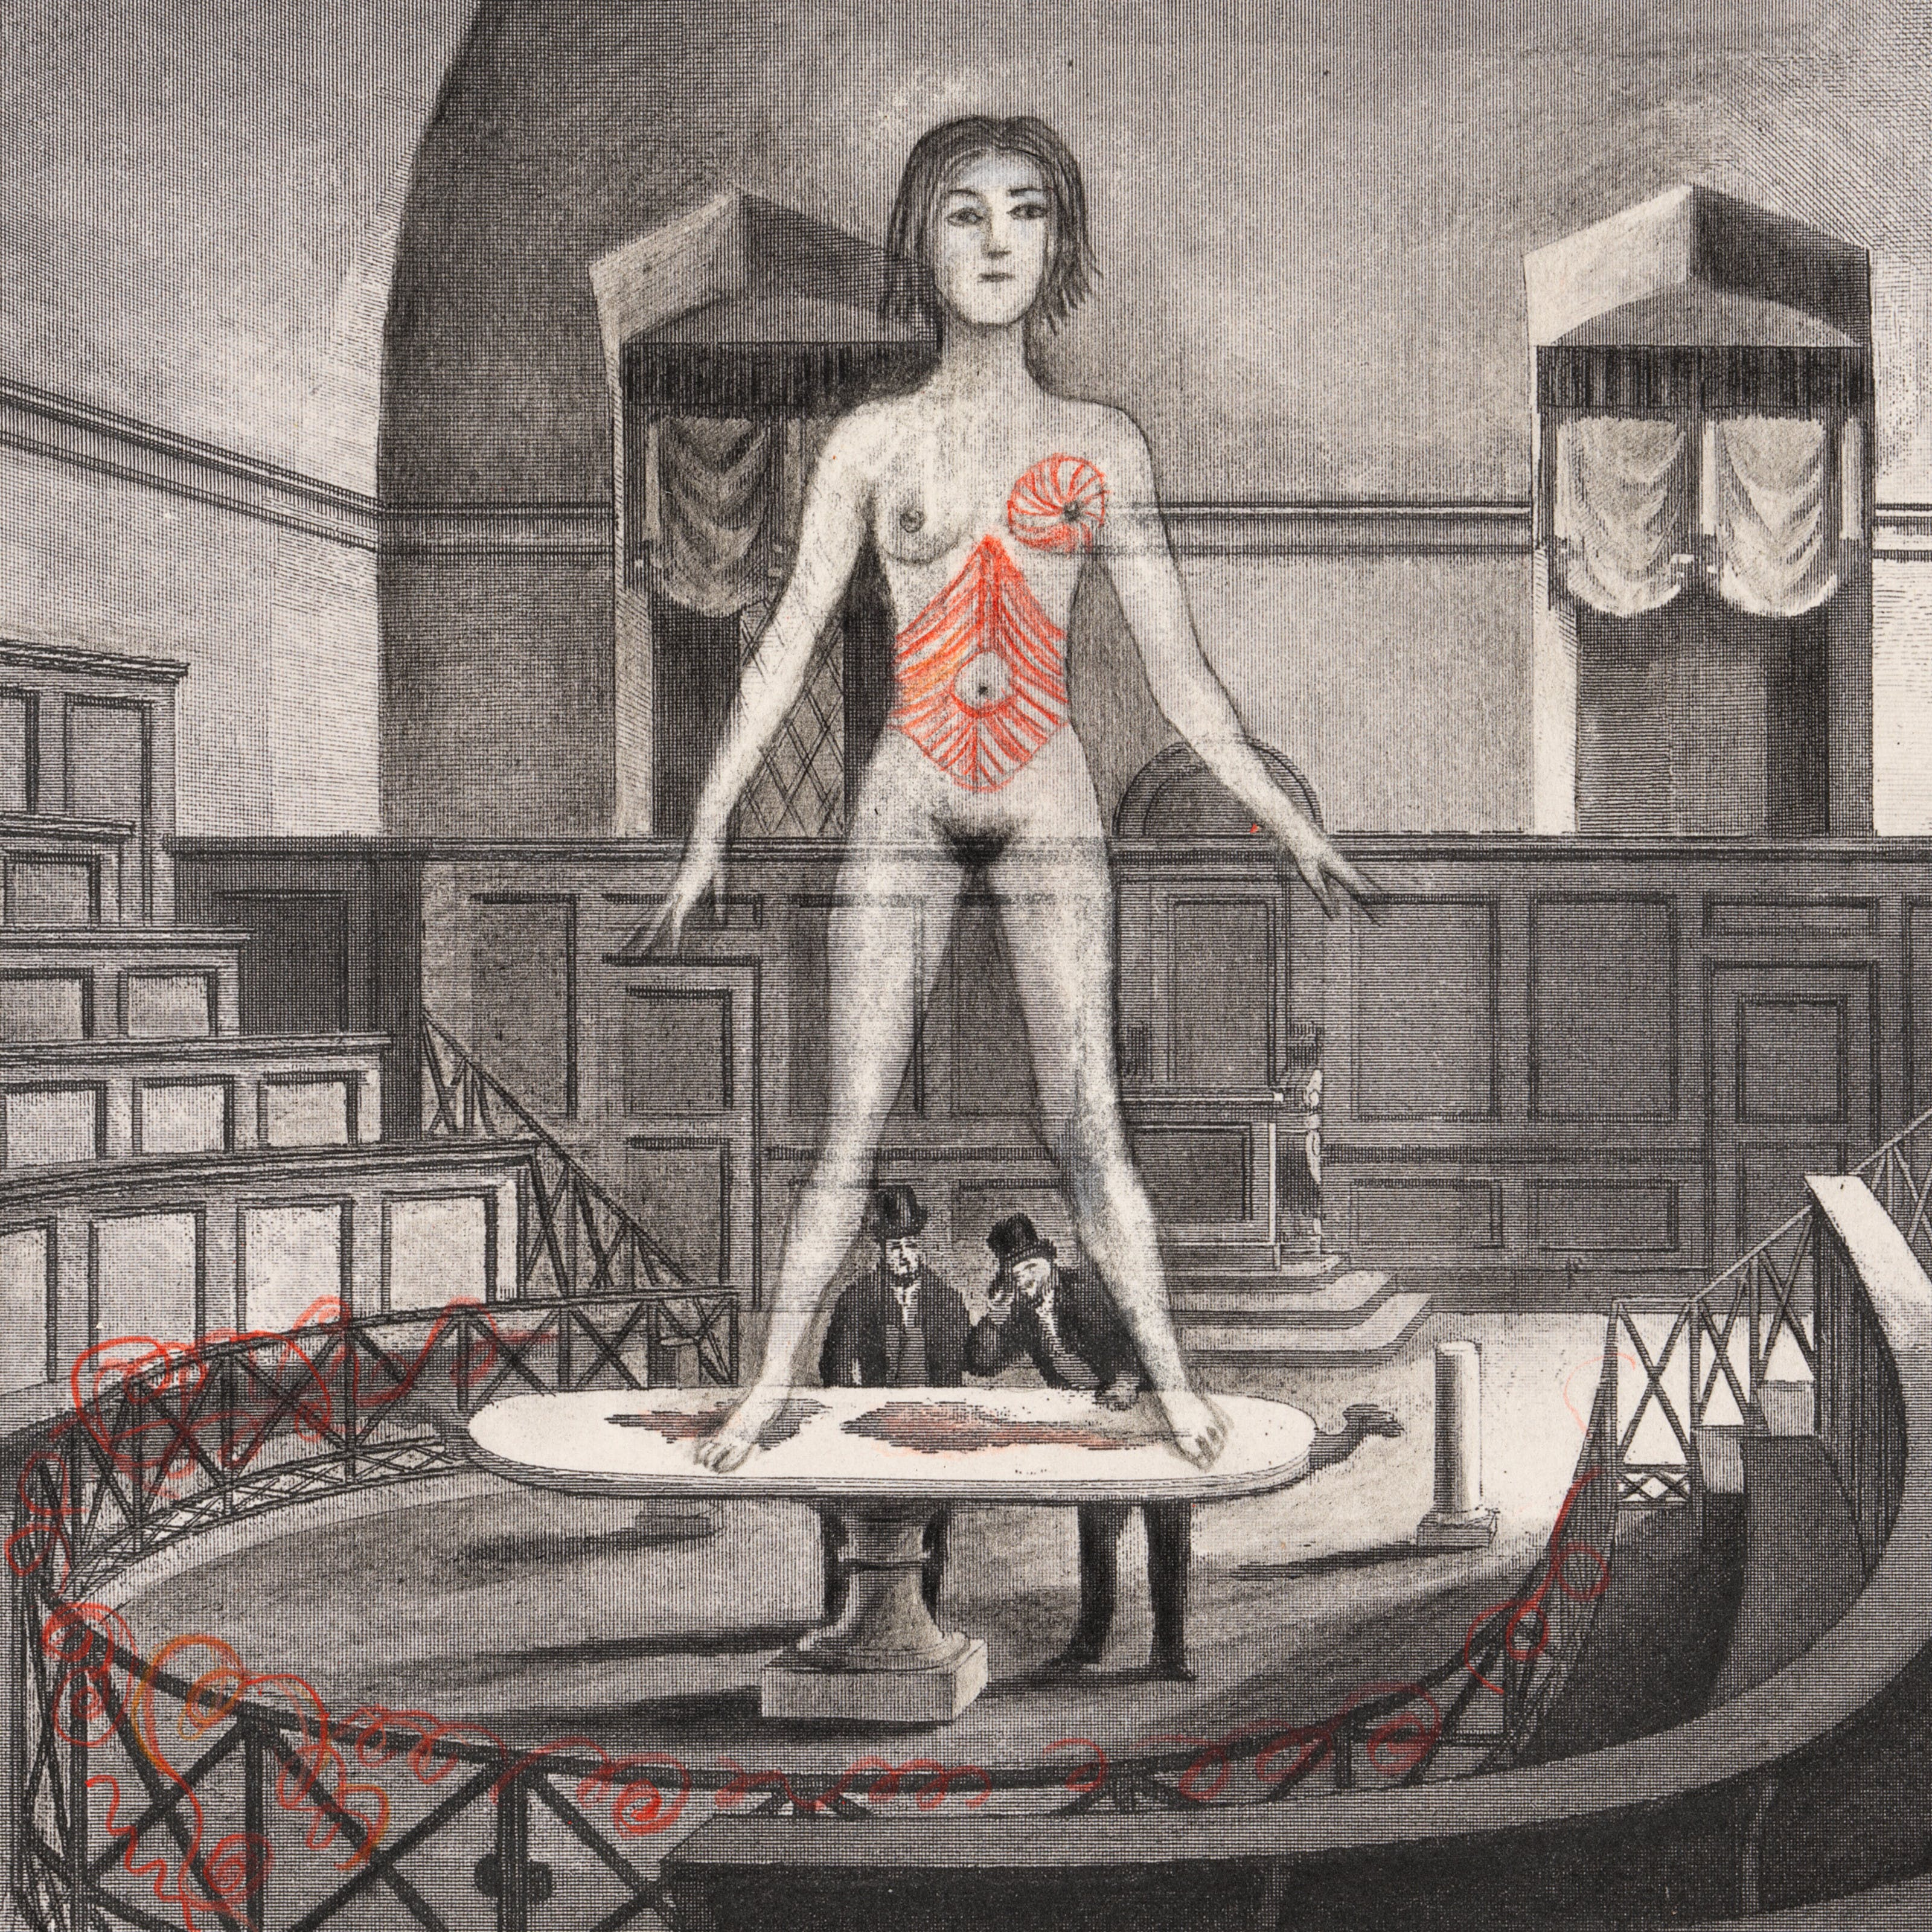 Pencil artwork drawn over an engraving depicting an old anatomy theatre with two men in the centre, by a table looking up towards a large (in scale) unclothed woman standing on the table, arms held away from her body. The whole scene is black and white apart from her torso and left breast, and thin cords woven into some railings which are tinted red.